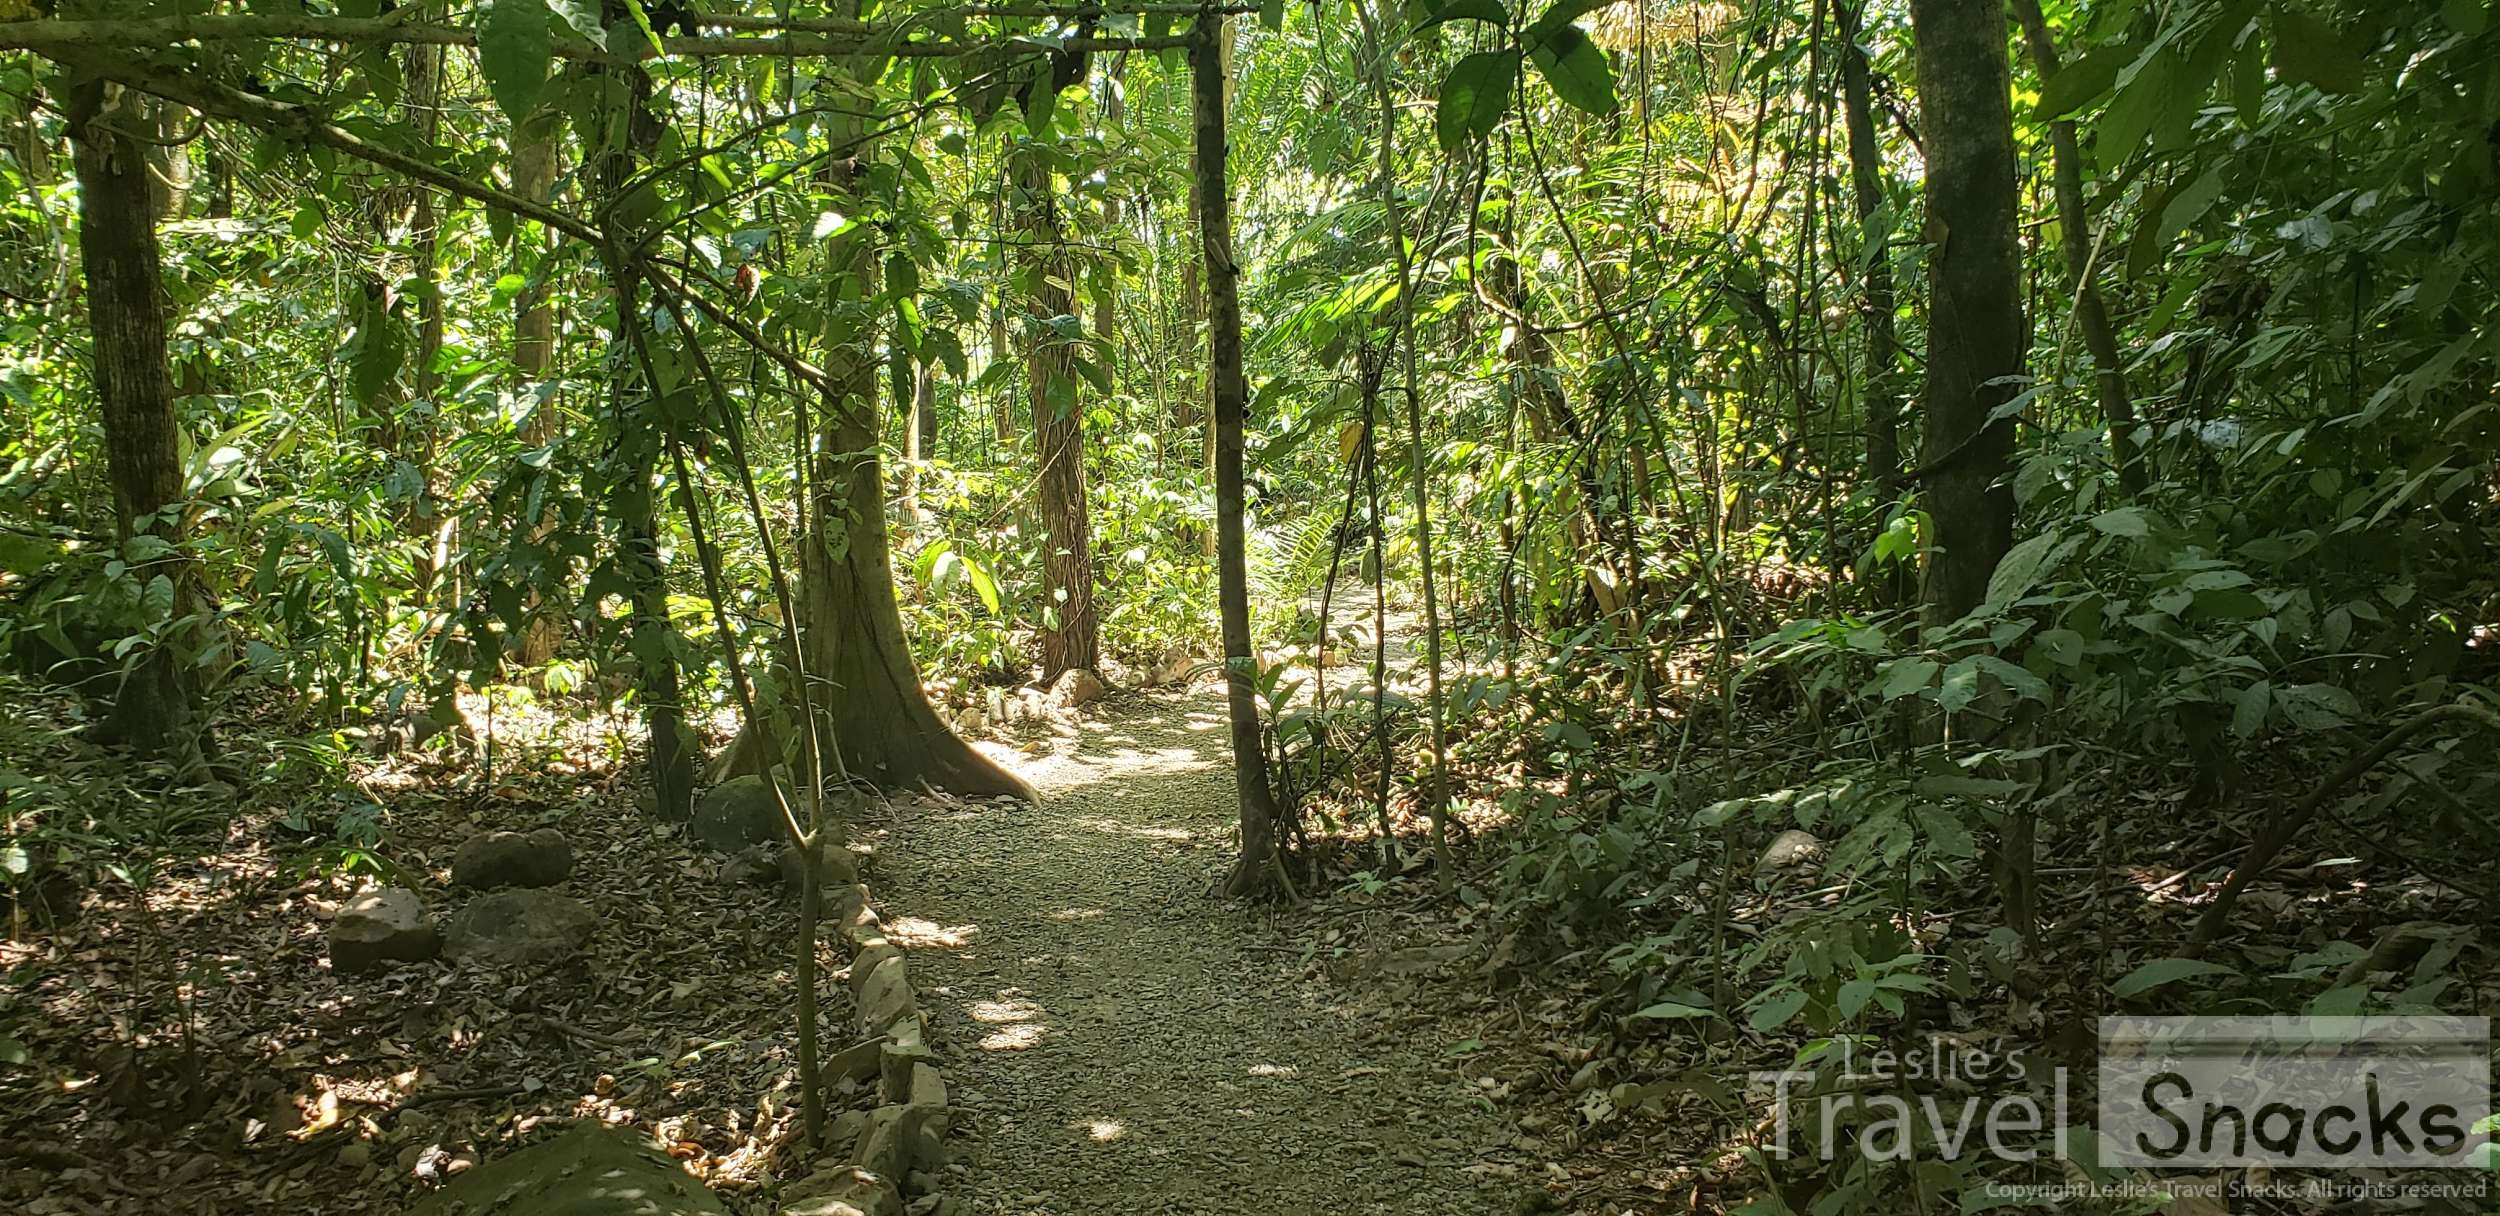 The trail is nice and flat and easy. You just have to maneuver over some rocks near the end.